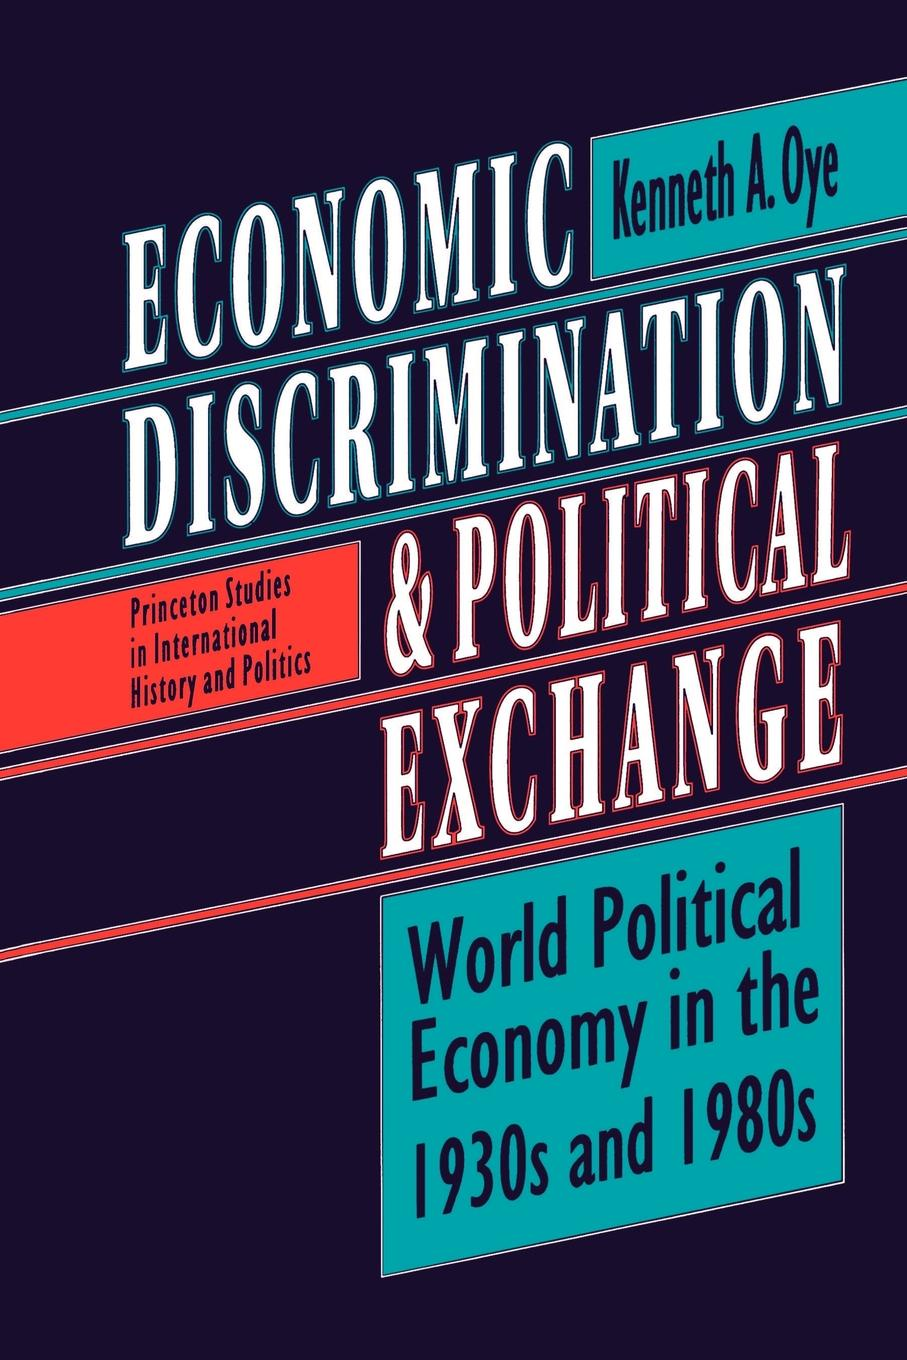 цена Kenneth A. Oye Economic Discrimination and Political Exchange. World Political Economy in the 1930s and 1980s онлайн в 2017 году